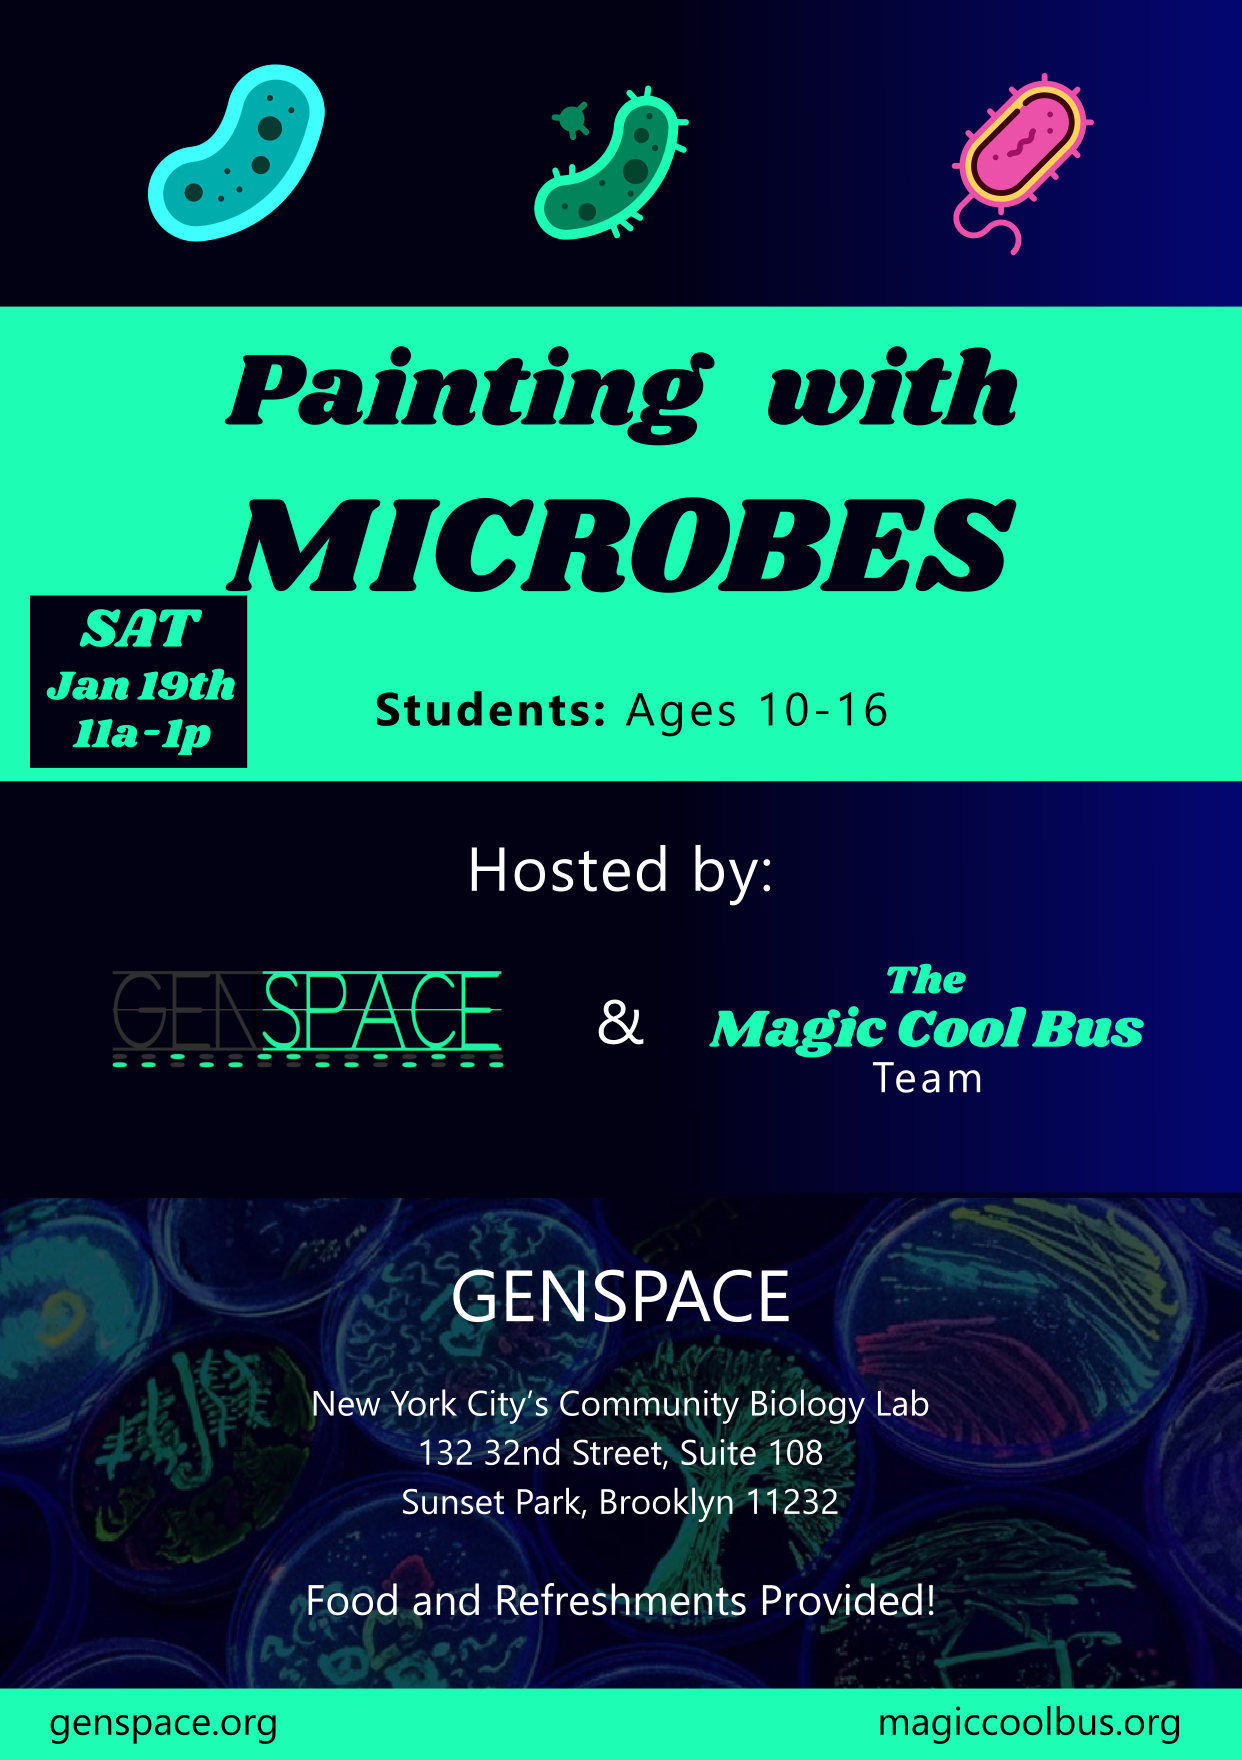 The Magic Cool Bus Team partnered with GENSPACE to provide students with an opportunity to paint with microbes!